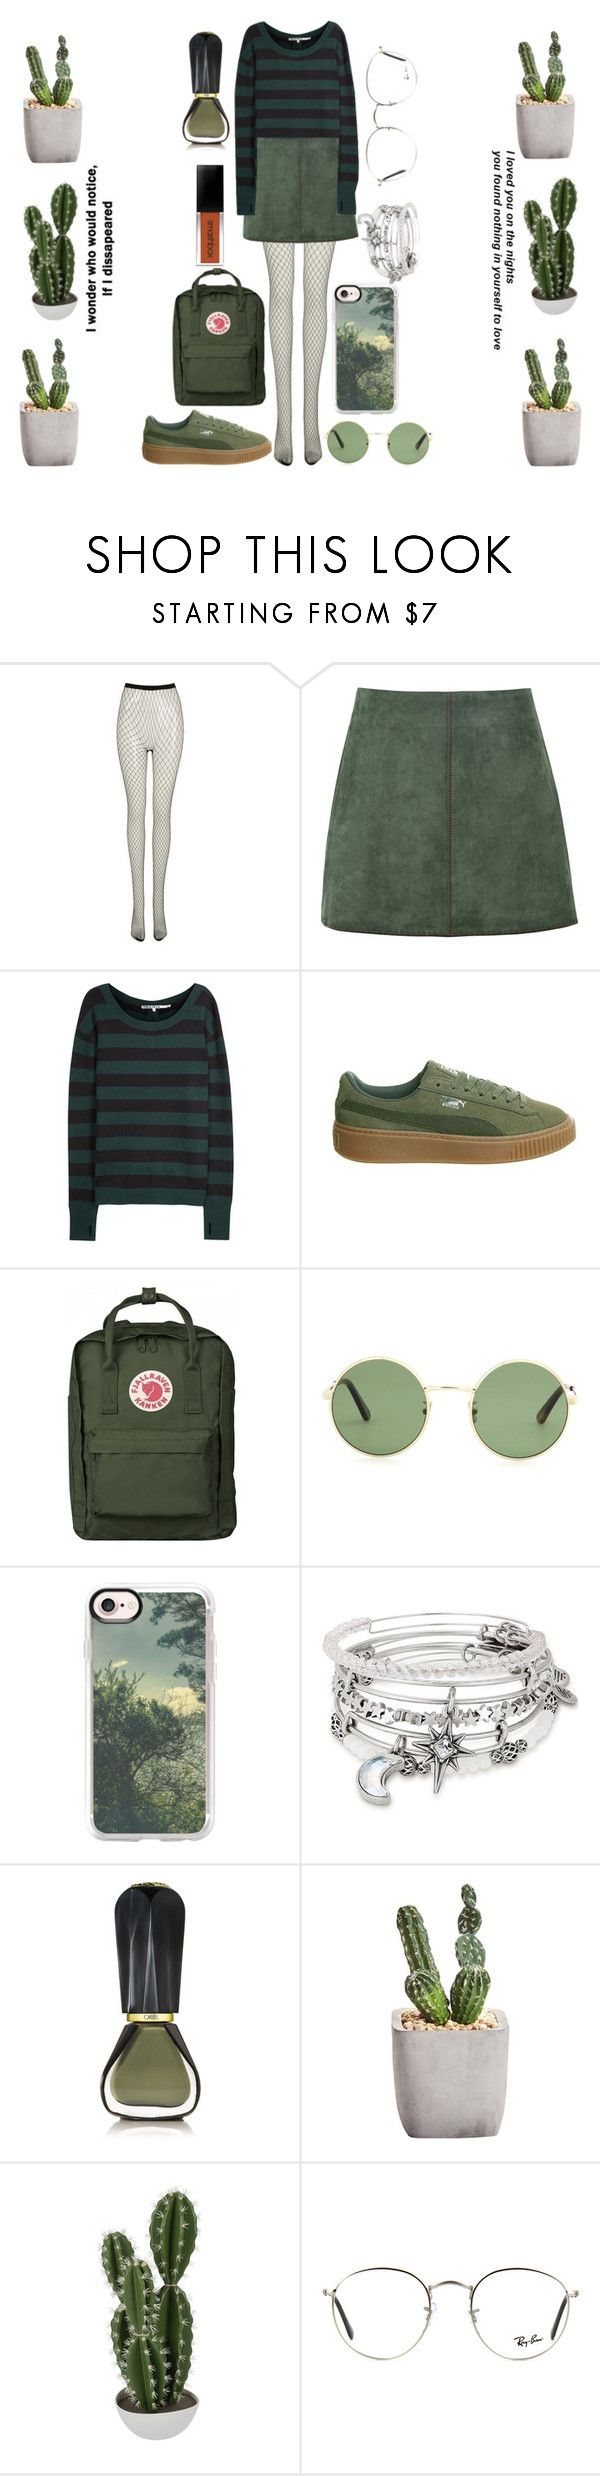 """""""G R E E N"""" by nikkyvanderoer ❤ liked on Polyvore featuring Frontrow Limited, George J. Love, Pam & Gela, Puma, Thread, Yves Saint Laurent, Casetify, Alex and Ani, Oribe and Abigail Ahern"""